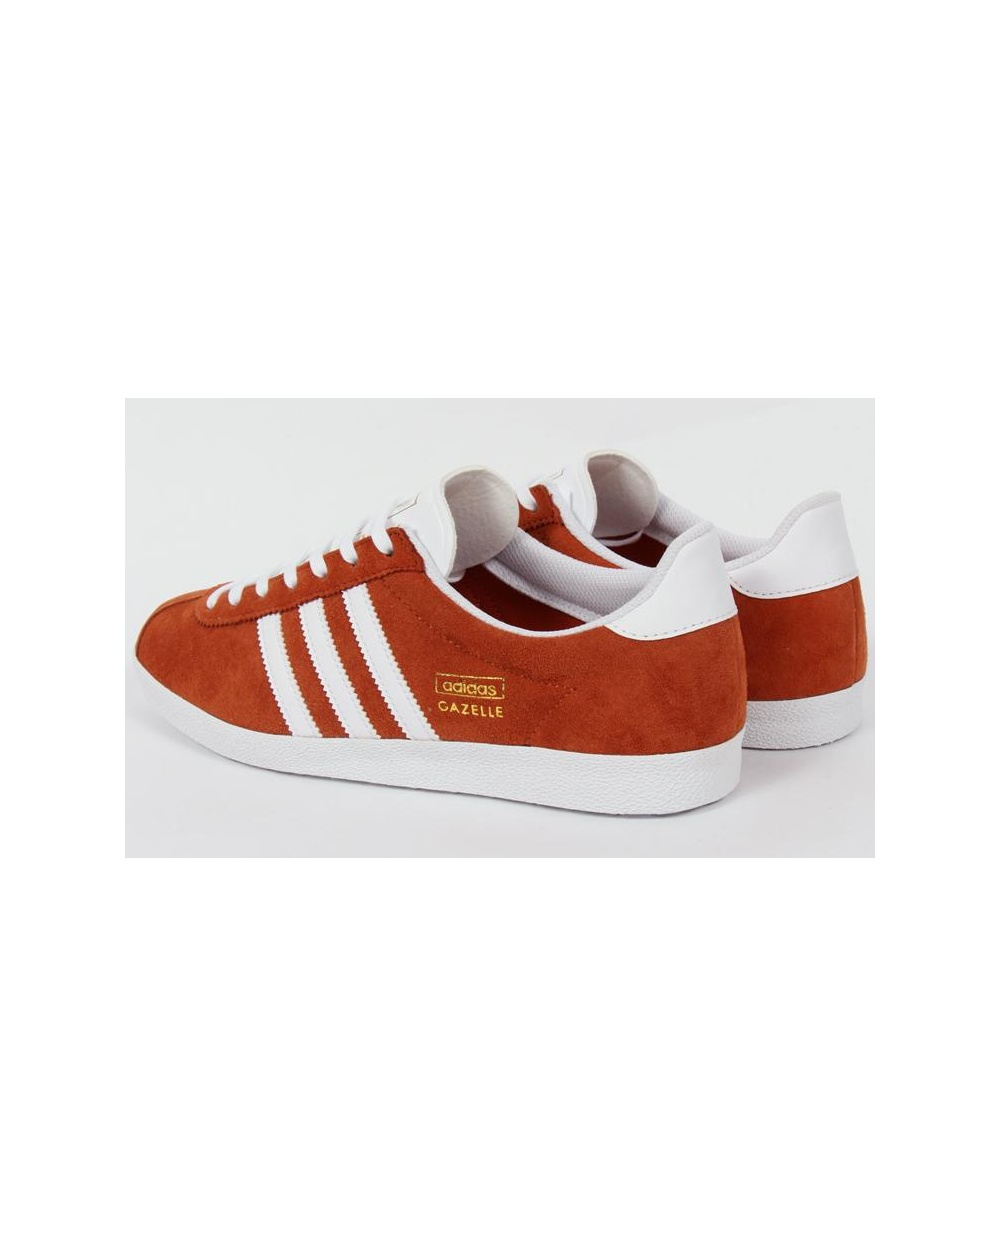 Adidas Originals Originals Top Ten Low Sneaker In Black: Adidas Originals Gazelle Og Trainers Fox Red/White, Originals